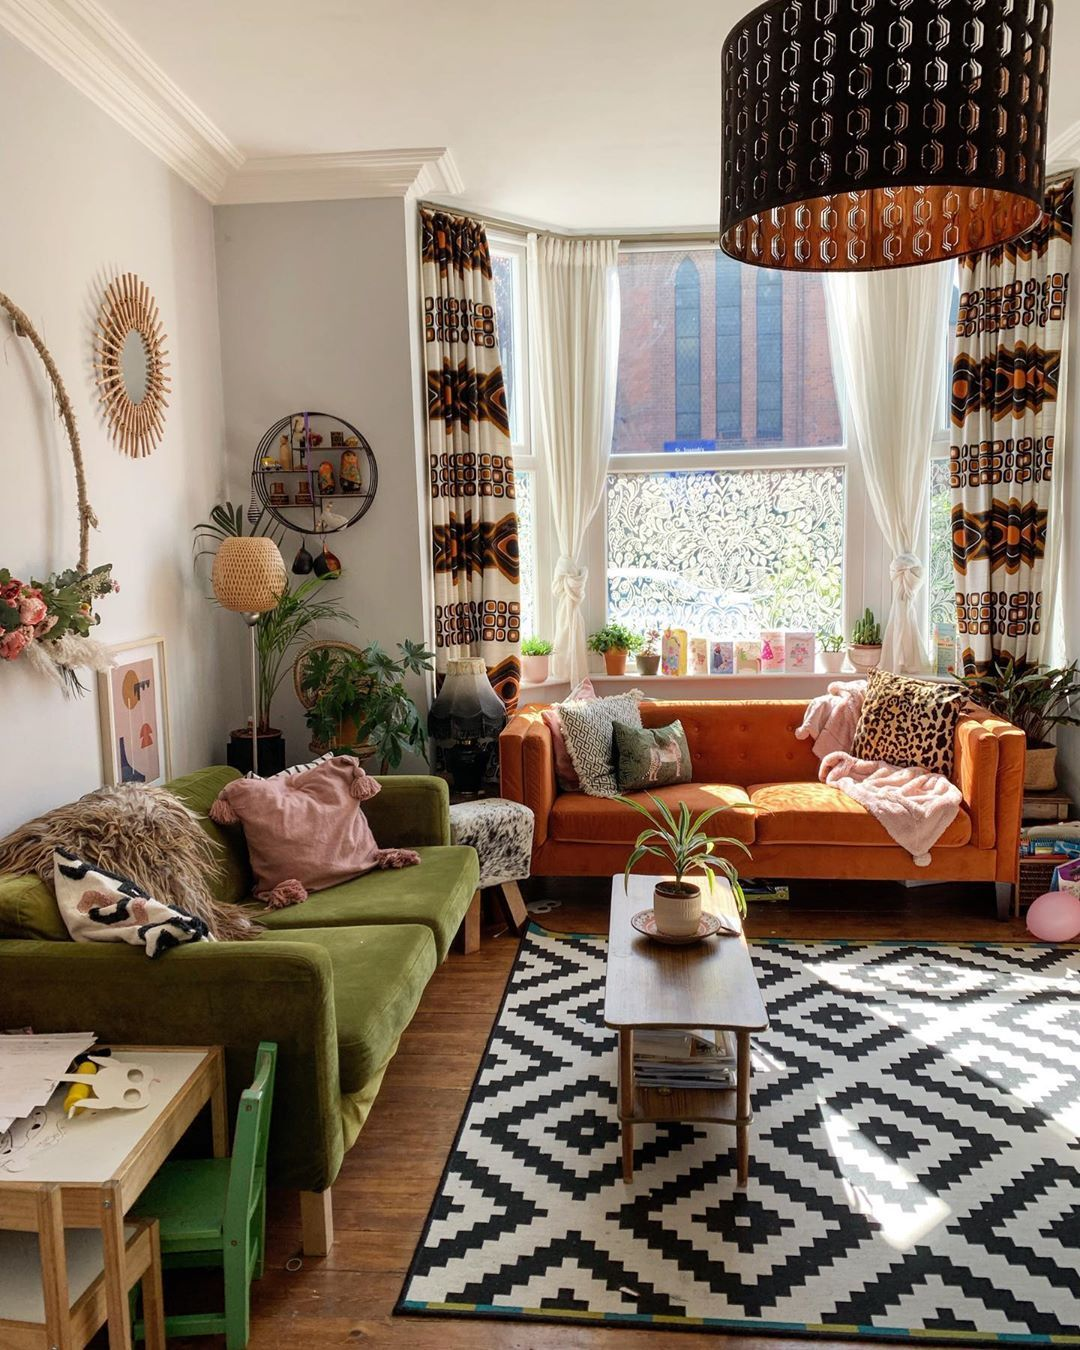 21 Quirky Bohemian Living Room Decor Ideas